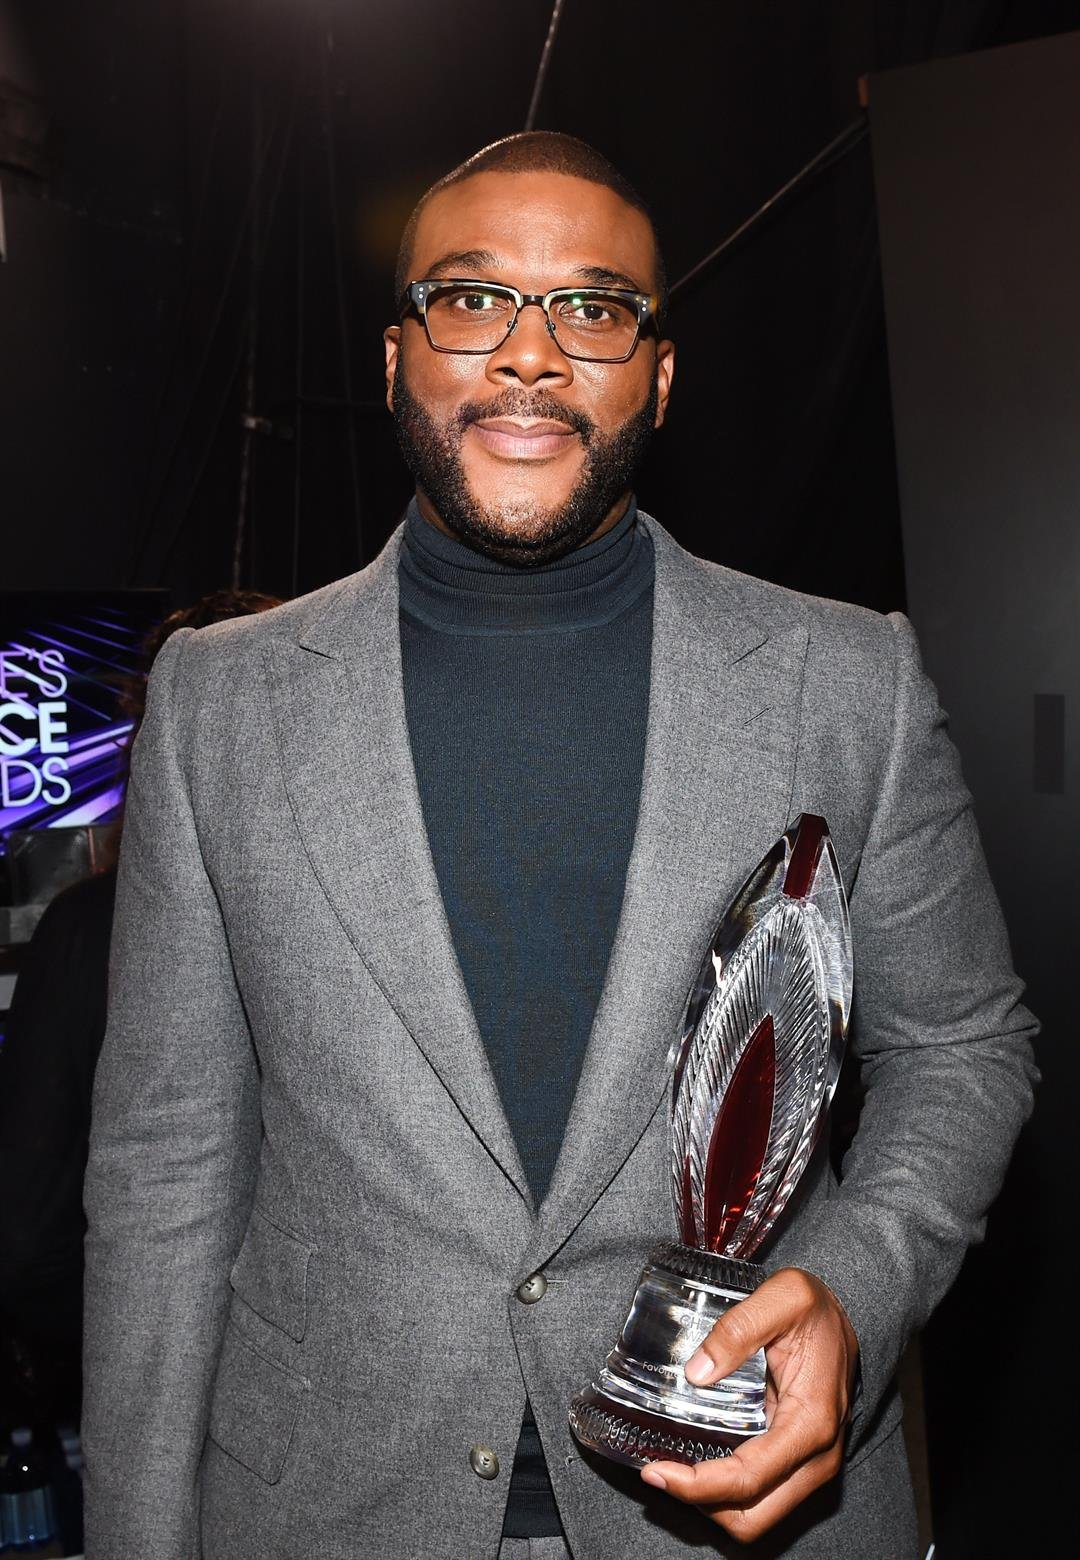 Tyler Perry wants his fans to know that he's not giving away cars, money or anything else on Facebook.